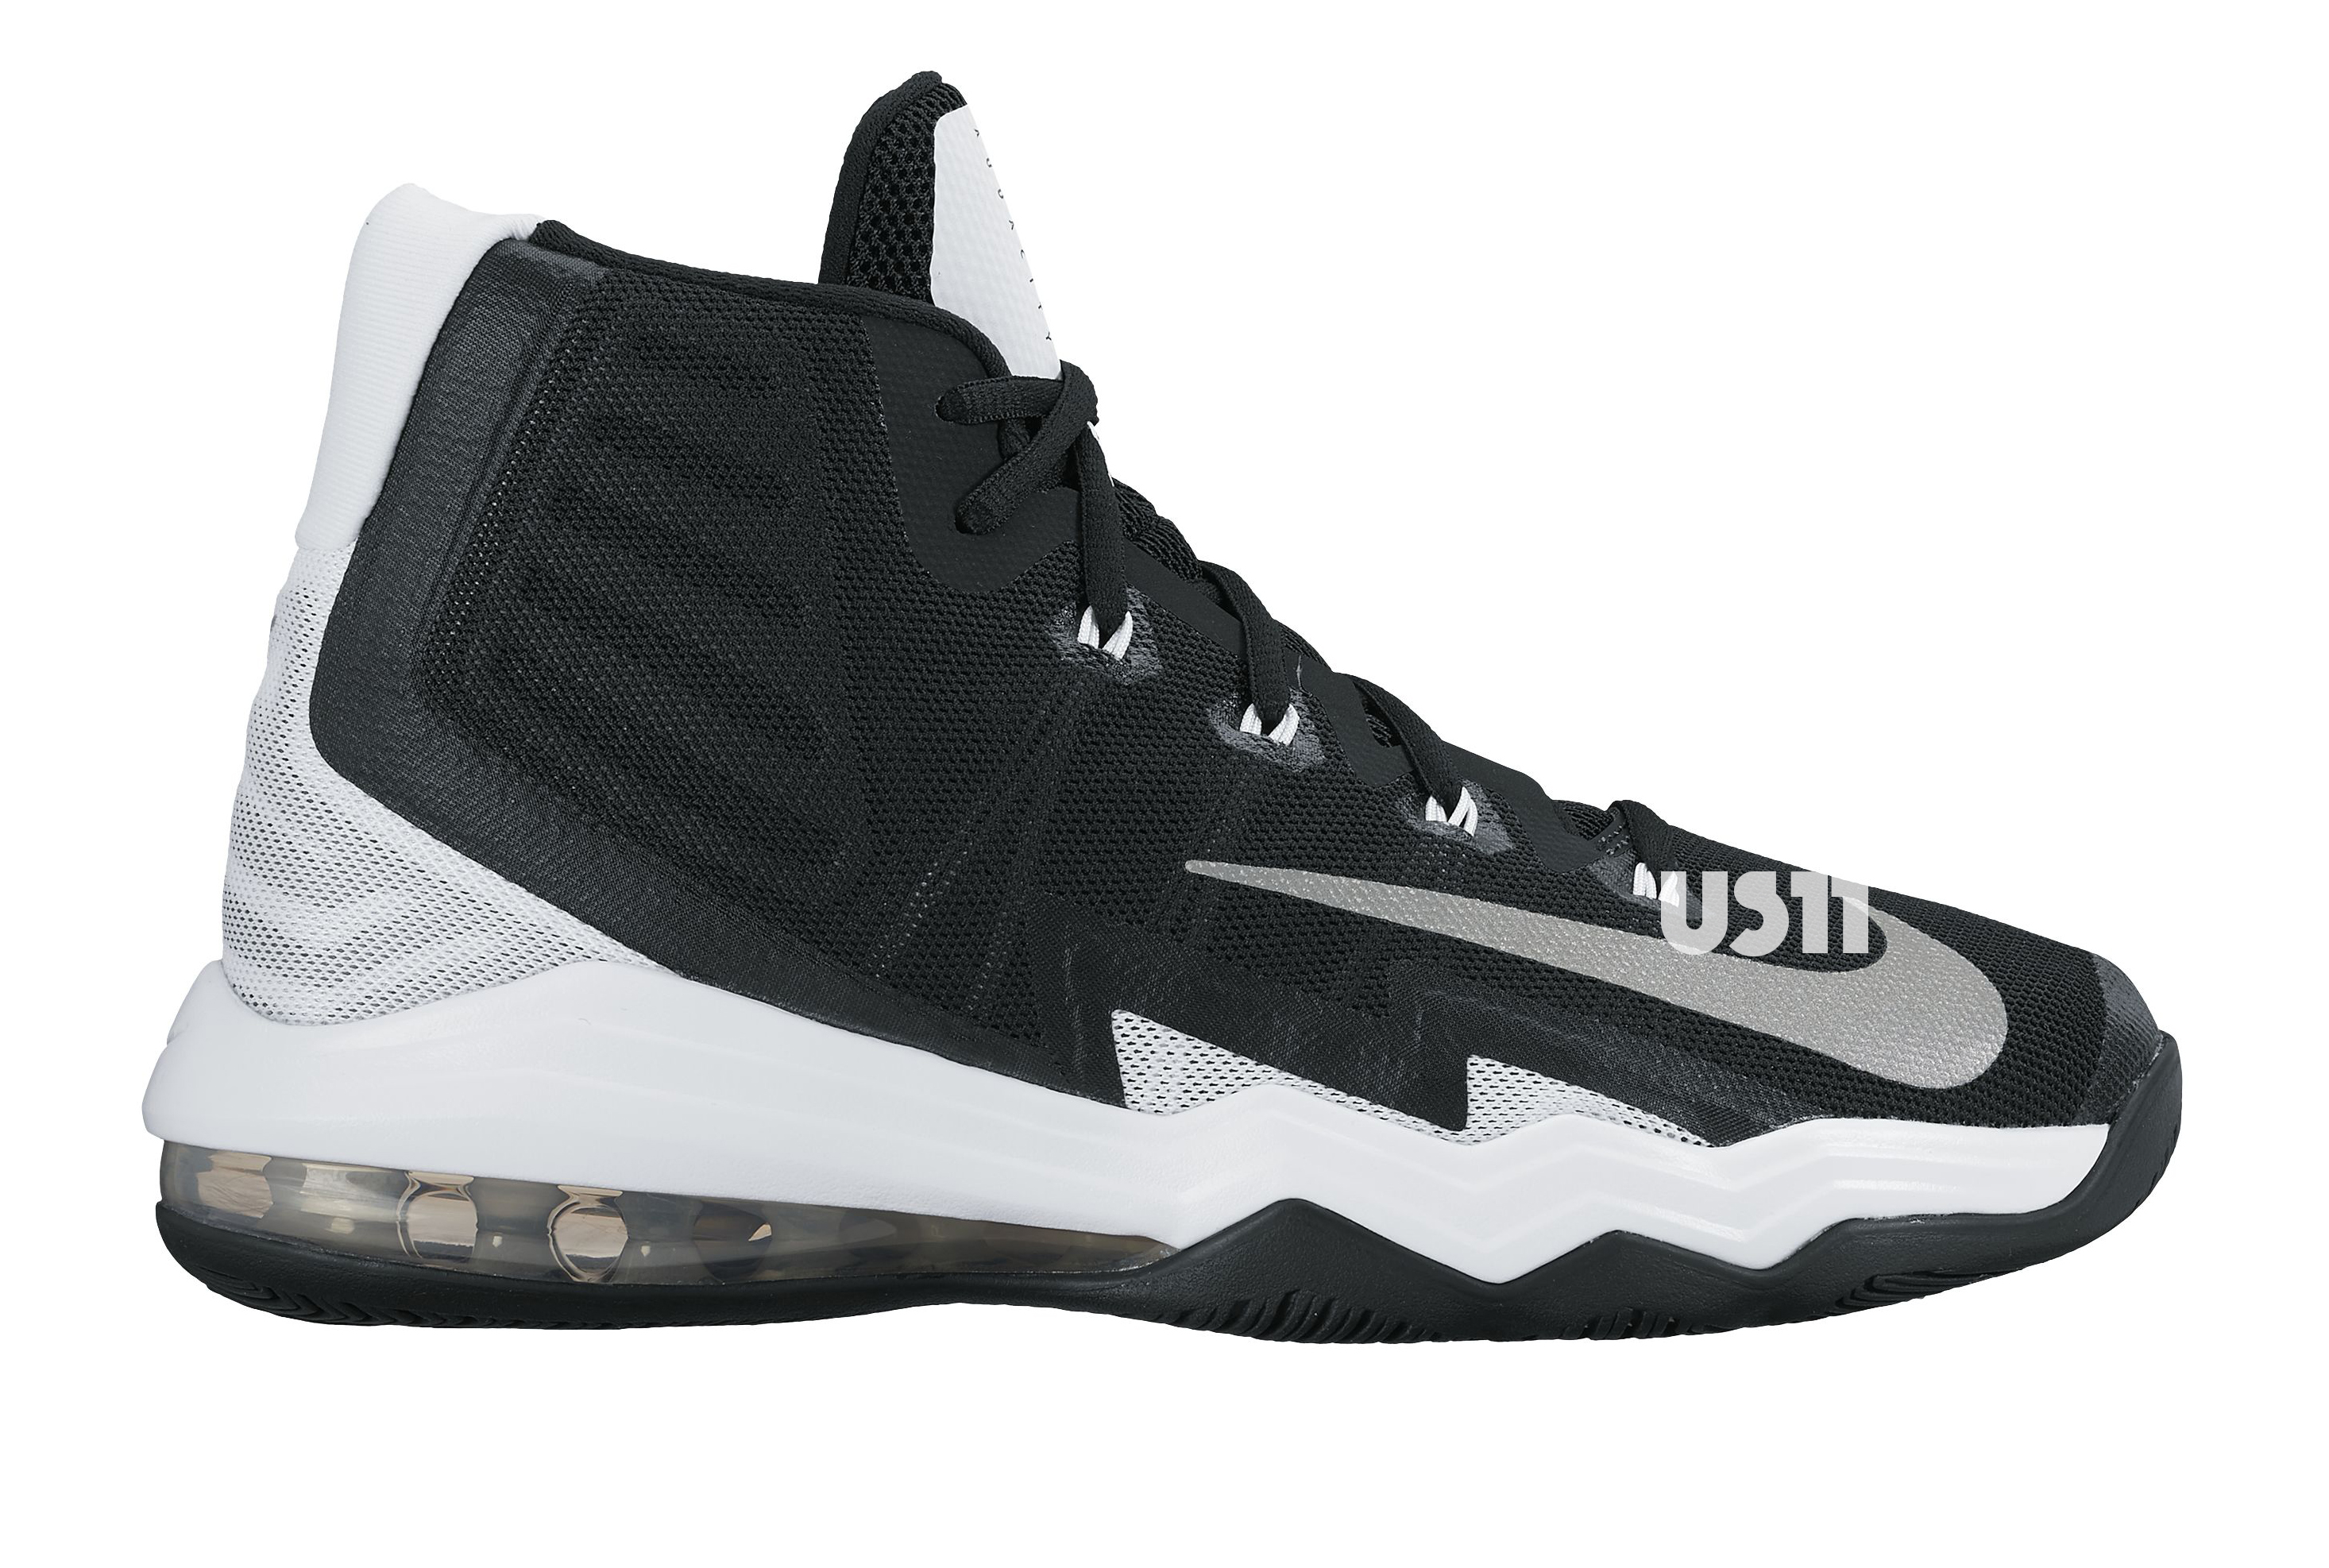 nike mens air max audacity basketball shoes review